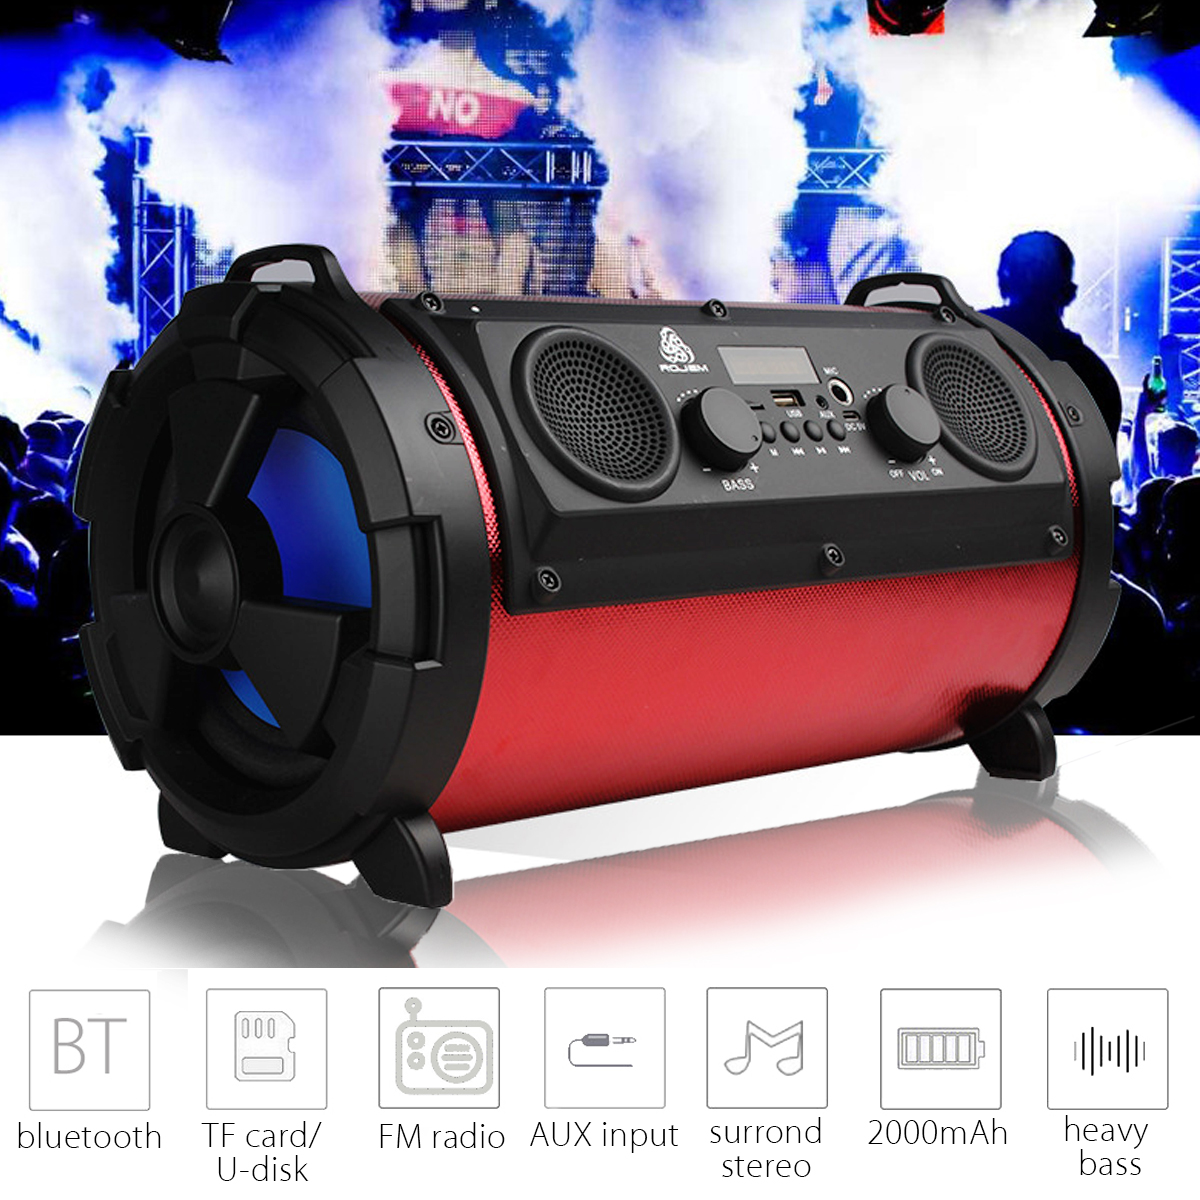 Kinco 15W Portable Bluetooth Wireless Speaker Stereo Hi-Fi Surround Super Bass Subwoofer Loudspeakers FM Radio TF AUX USB outdoor portable bluetooth speaker wireless waterproof bass loud speaker 3d hifi stereo subwoofer support tf card fm radio